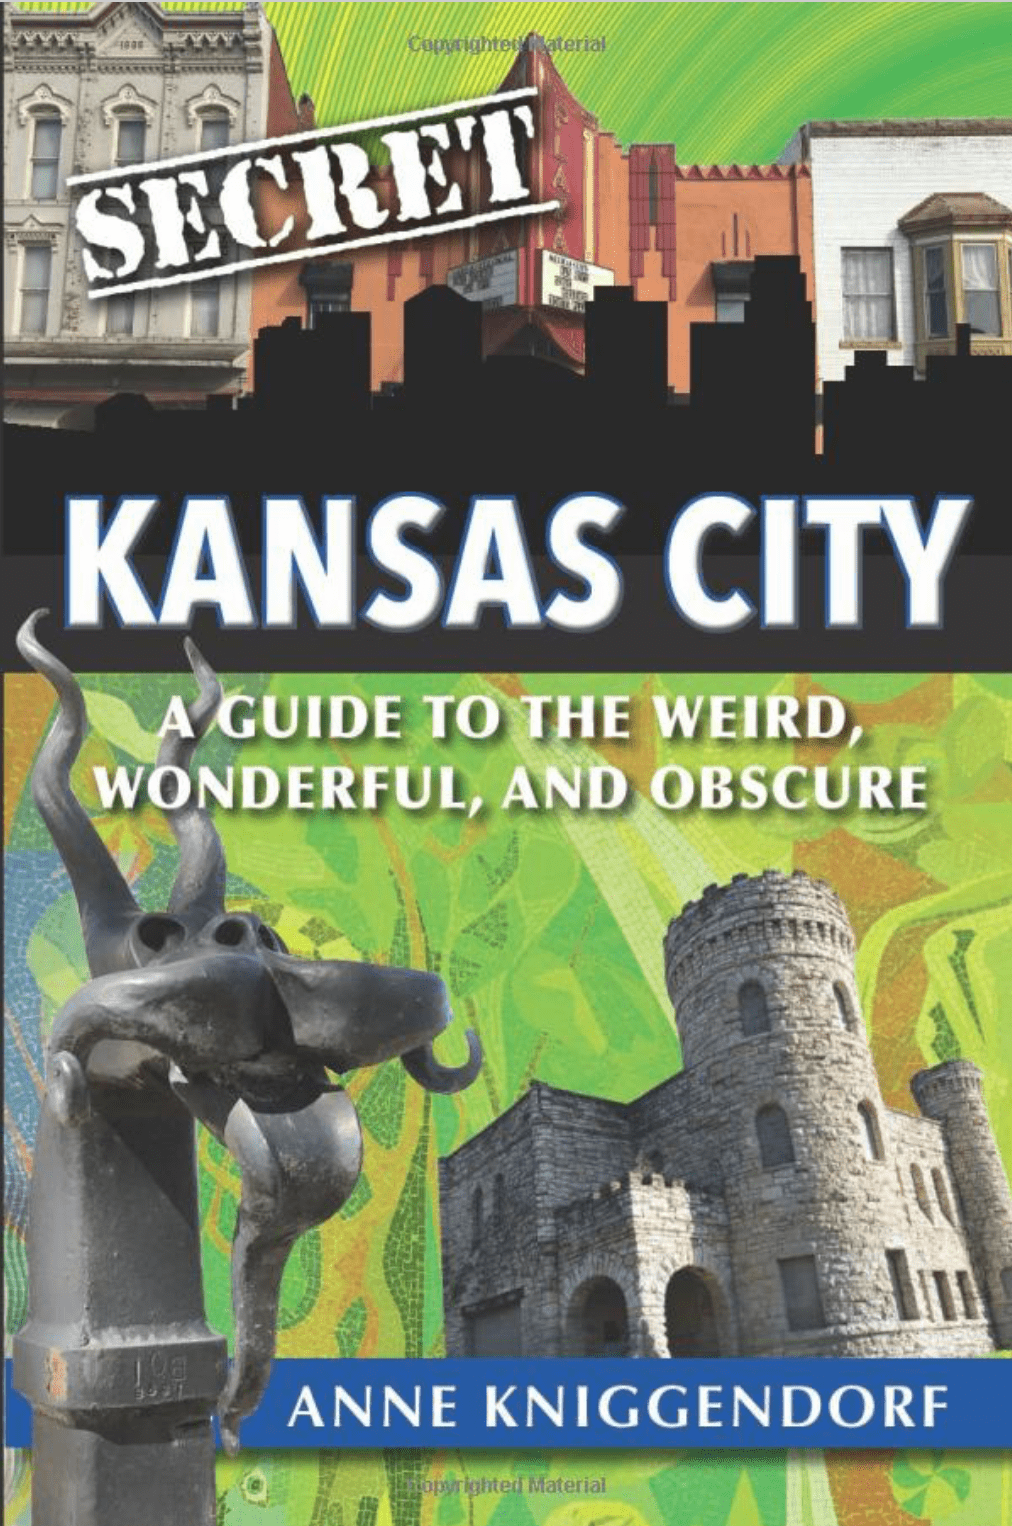 Secret Kansas City - A Guide to the Weird, Wonderful & Obscure